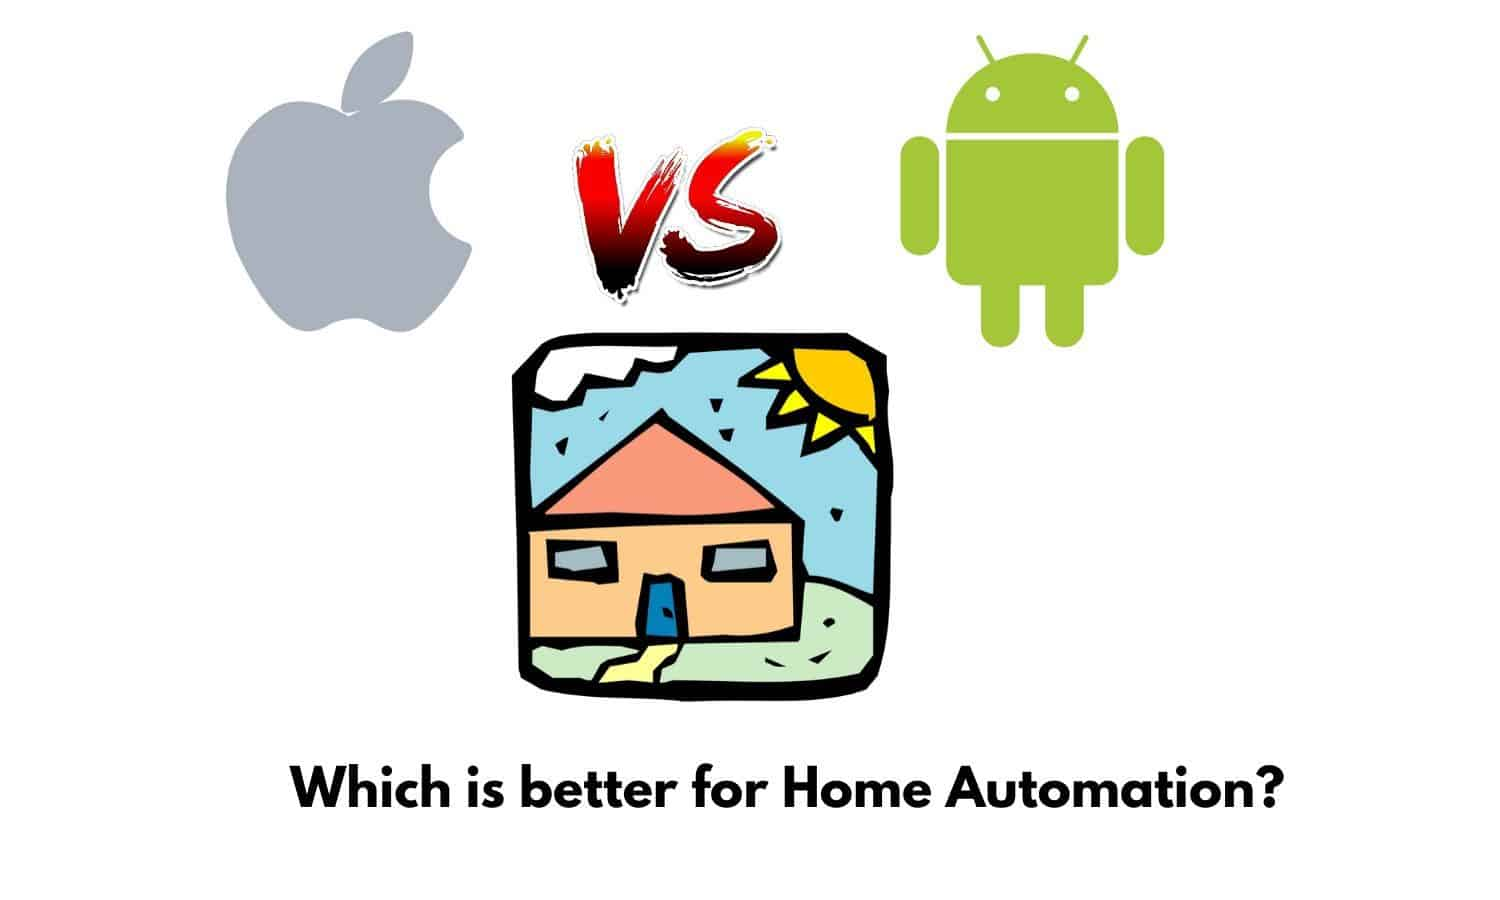 Should I Buy an iPhone Or an Android for Smart Home Automation